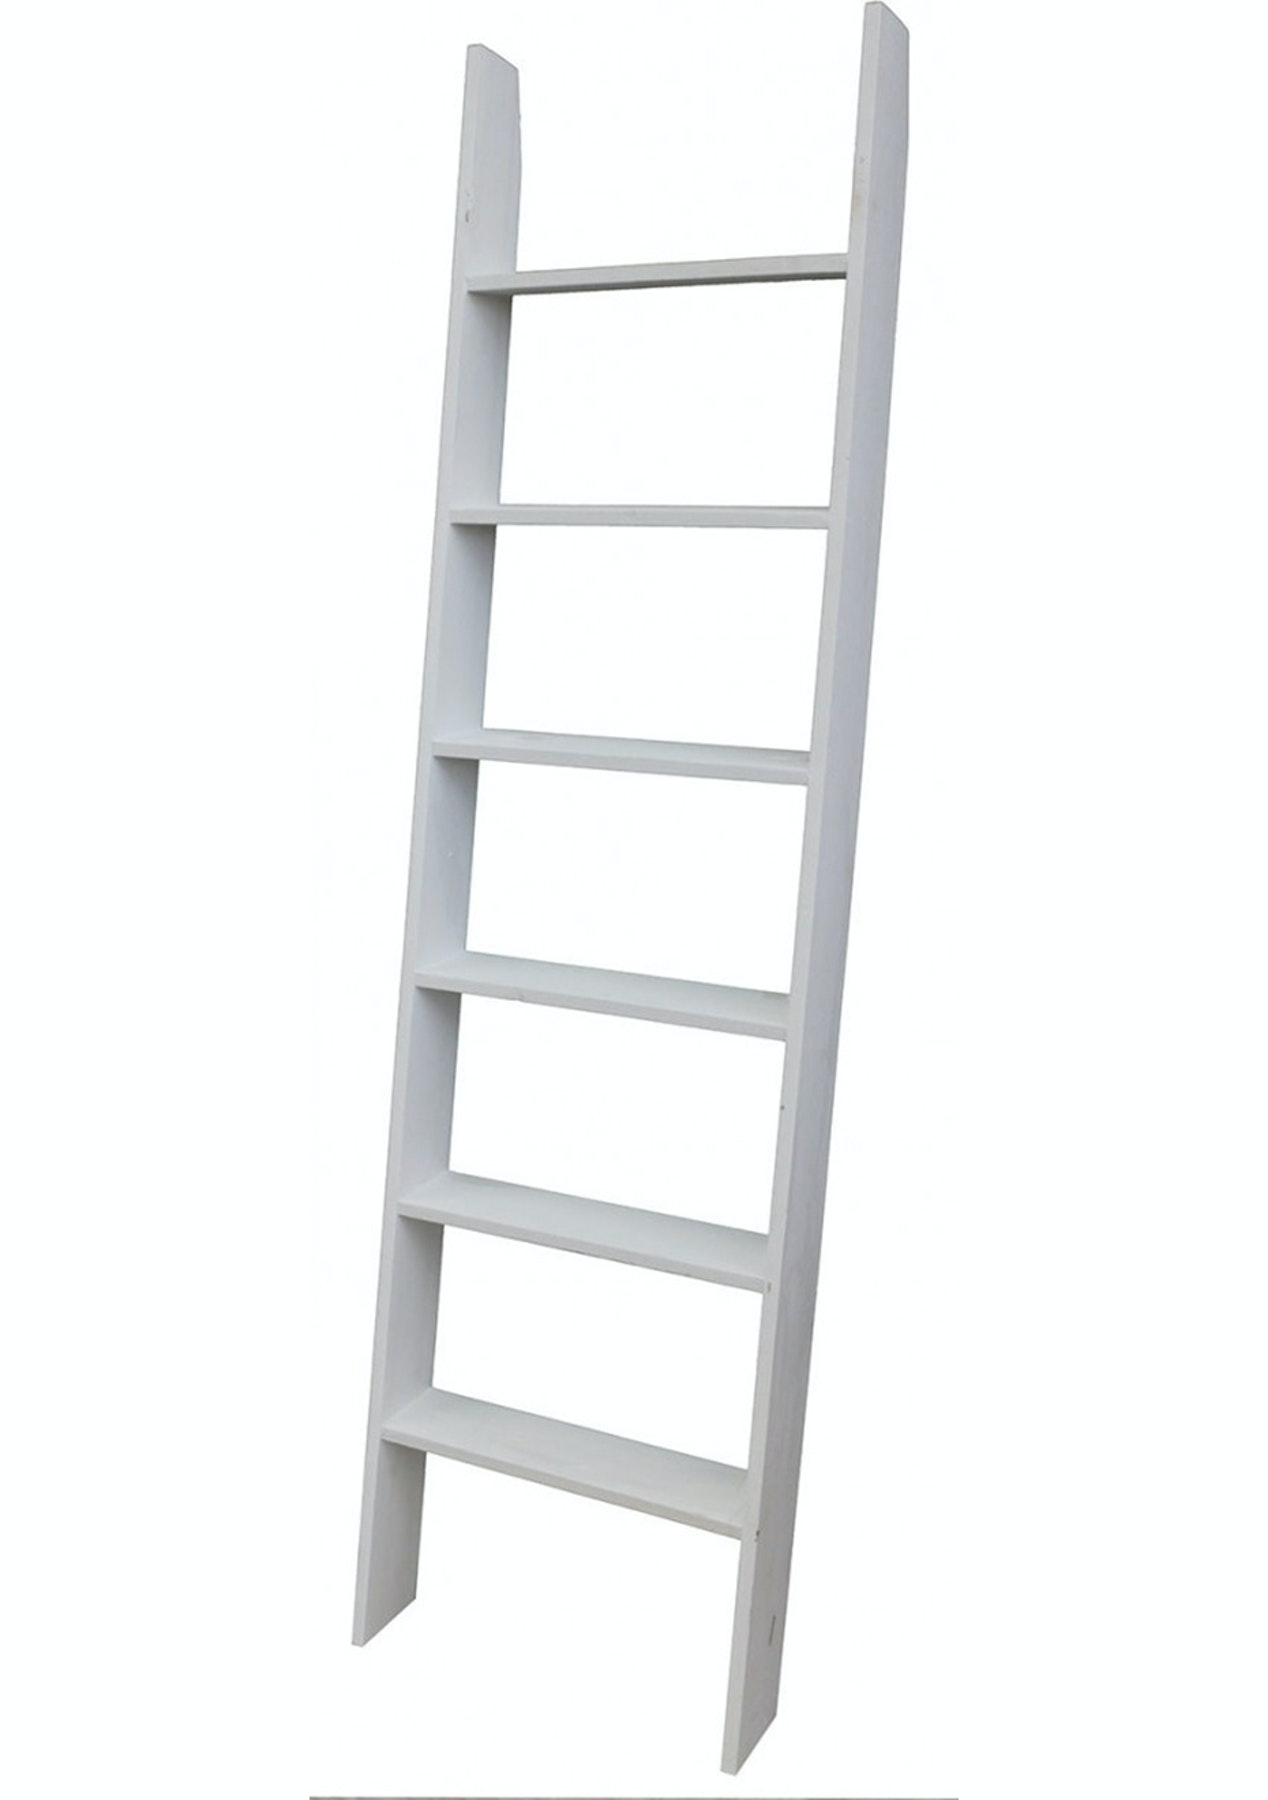 170Cm Shabby White Finish Ladder Shelving  Shelves, Bookcases, Storage